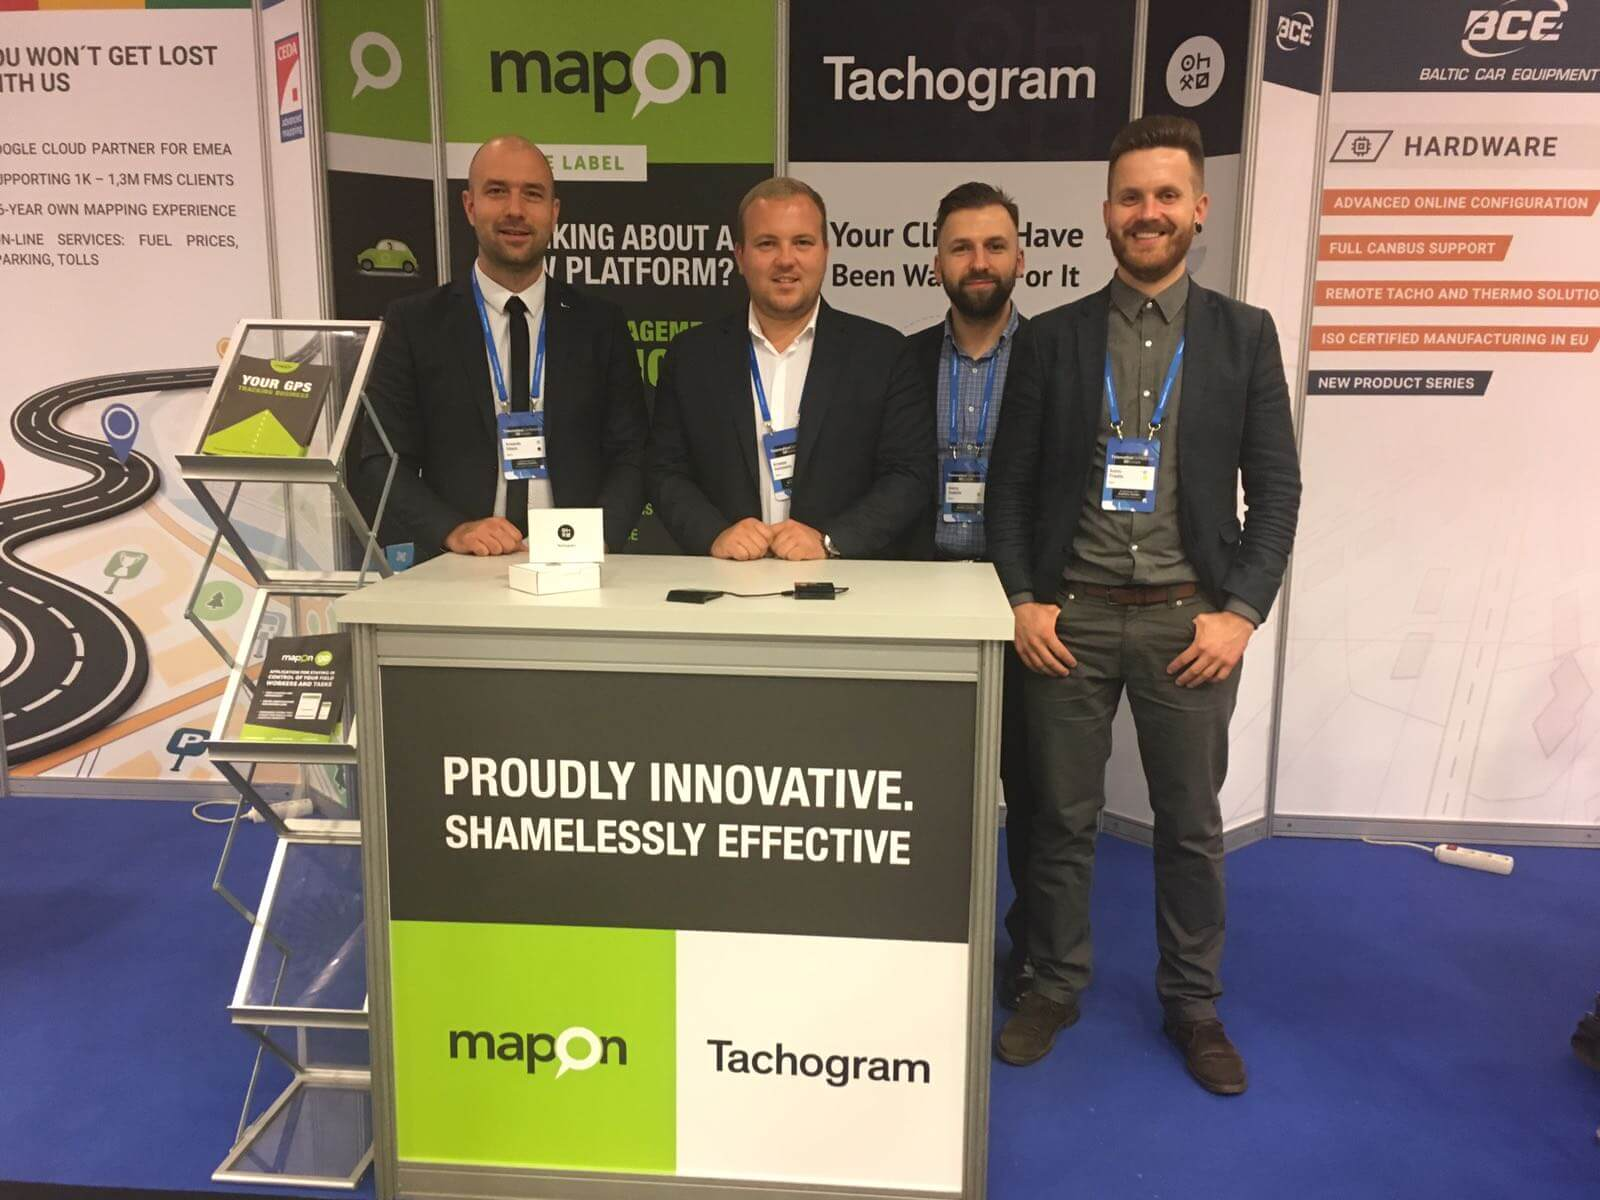 Mapon and Tachogram showcases at one of the biggest telematics conferences in Europe